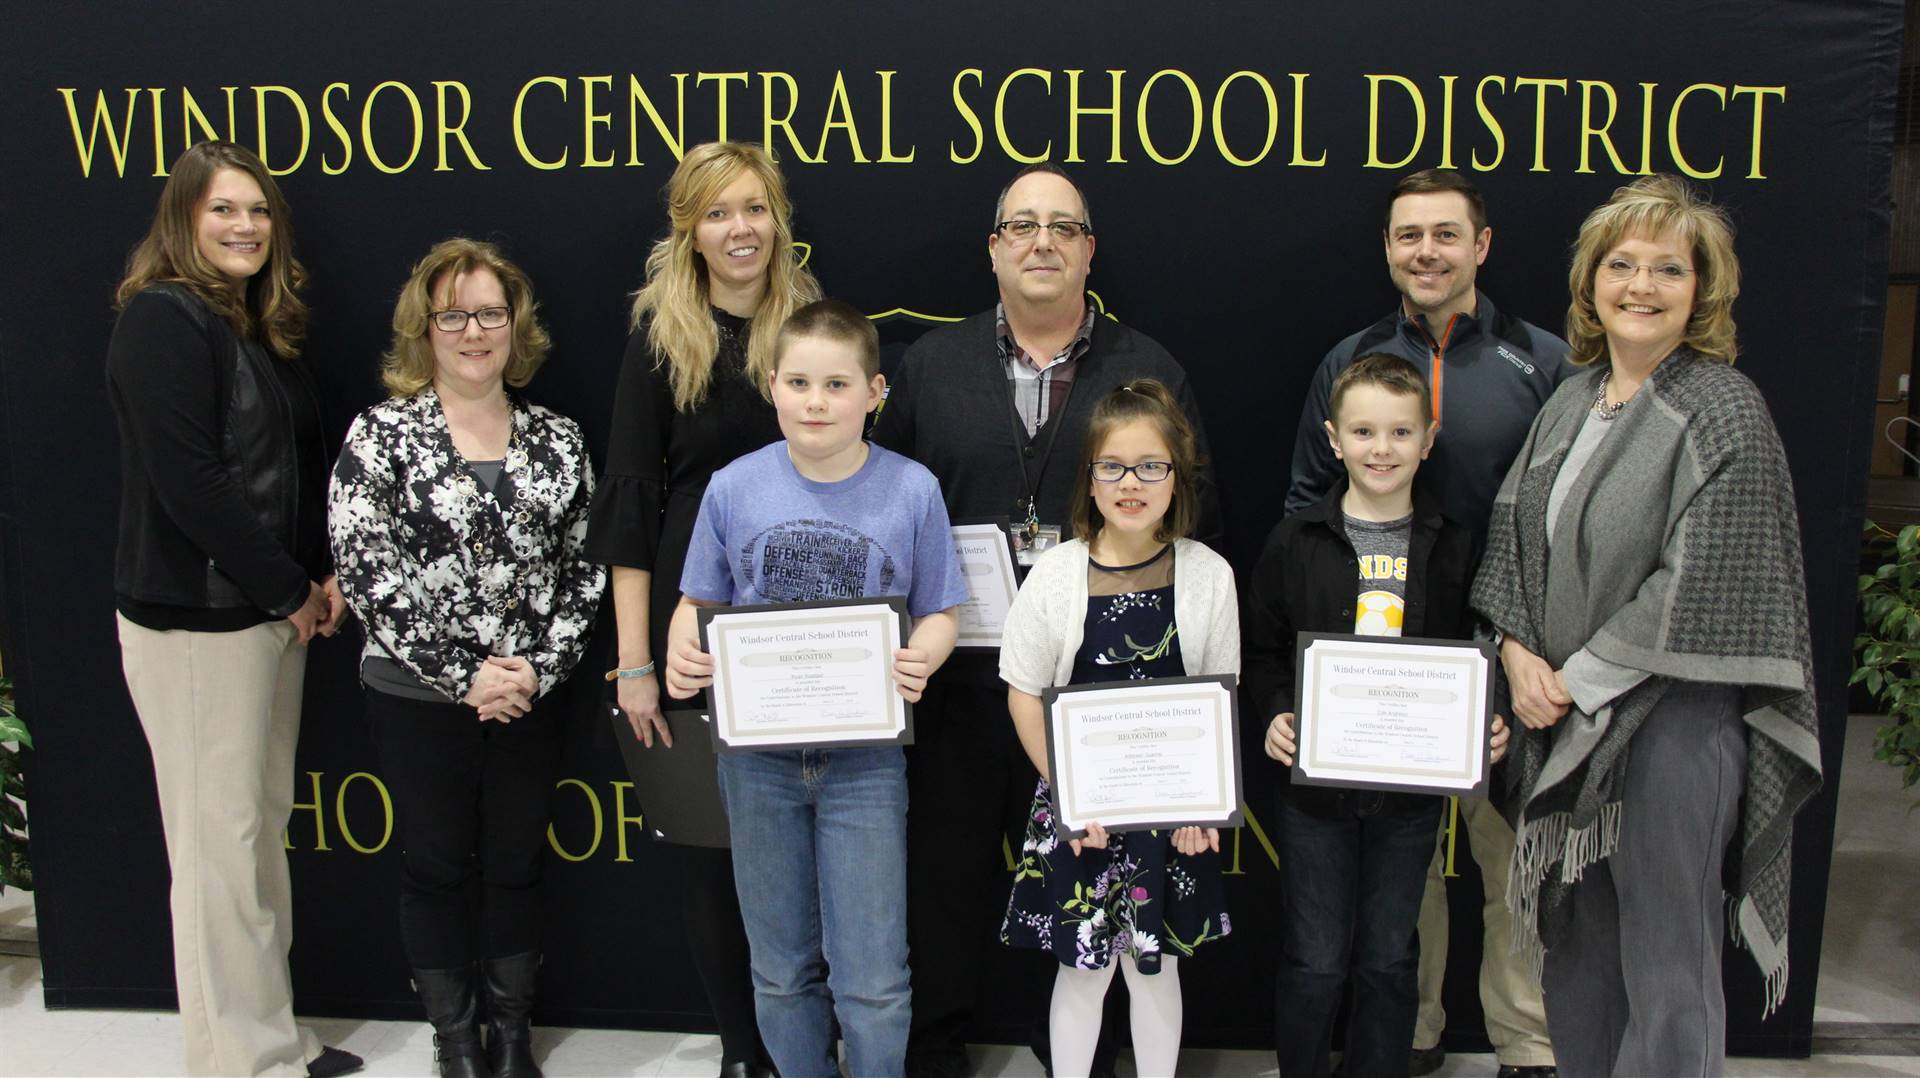 Student Council – Mike Trapani, Liz Sharkan and officers Lizzy Hopkins, Addyson Guarino, Ryan Waddel